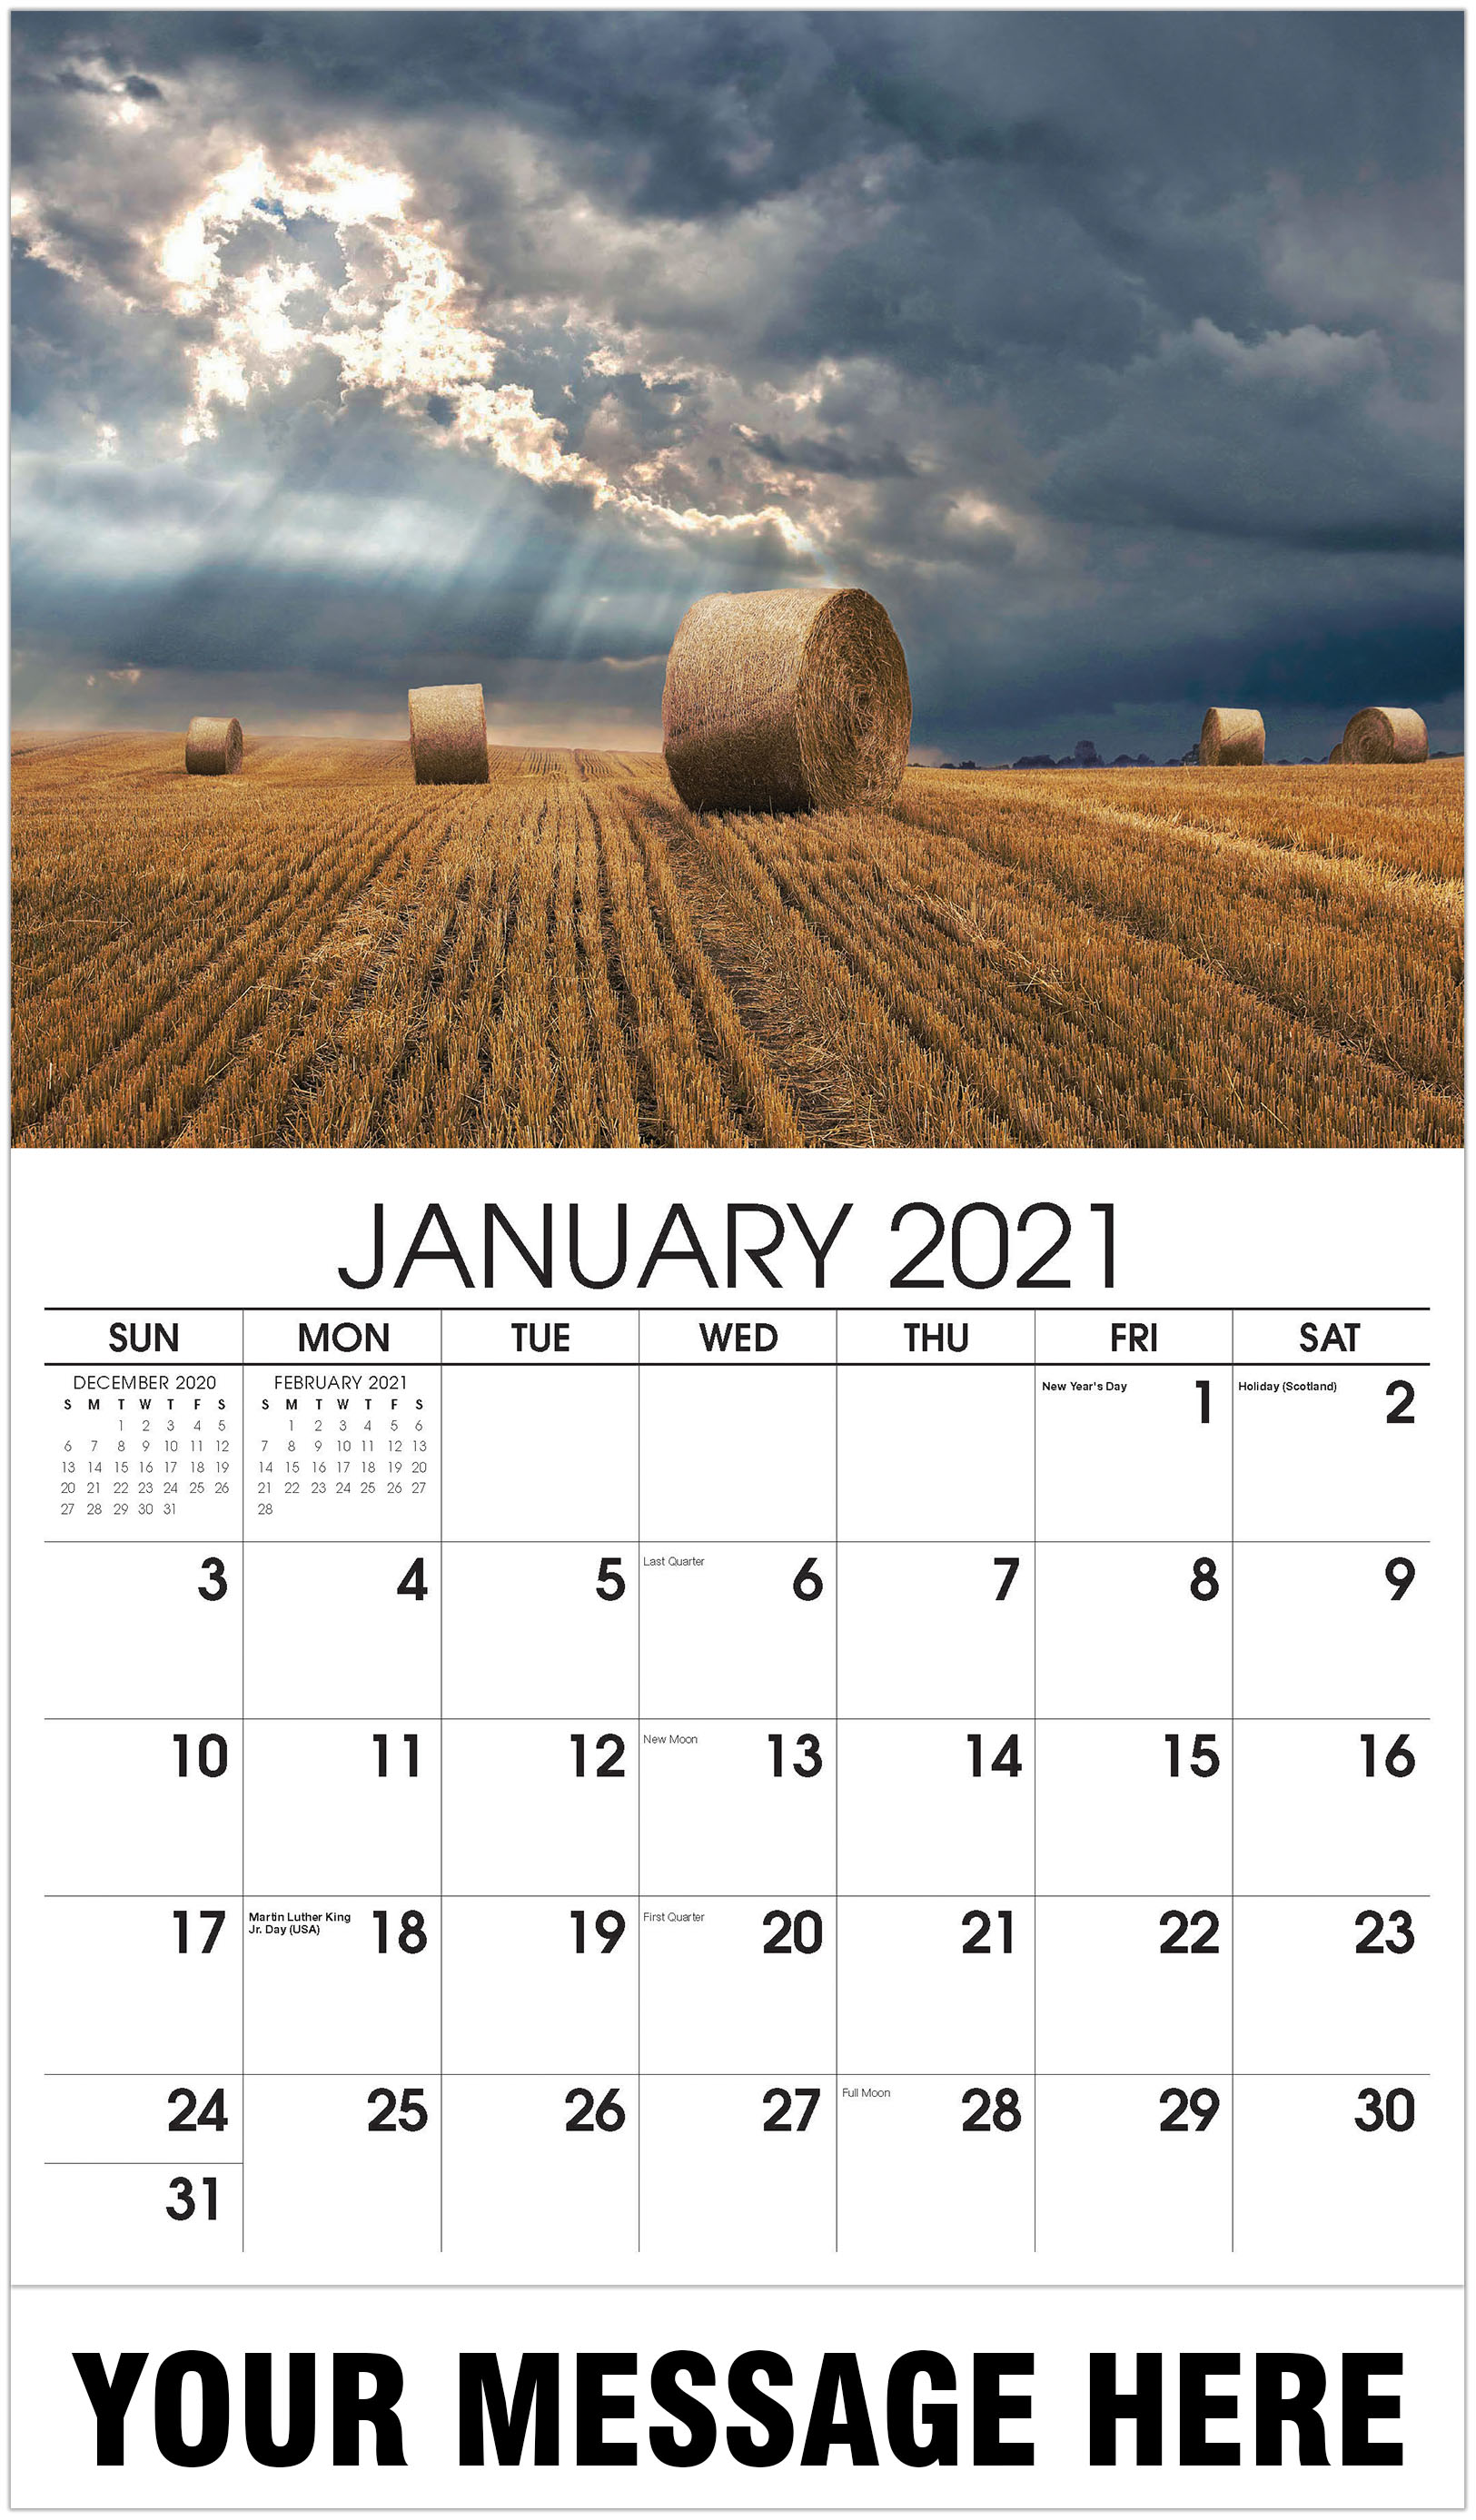 Hay Bales - January - Country Spirit 2021 Promotional Calendar